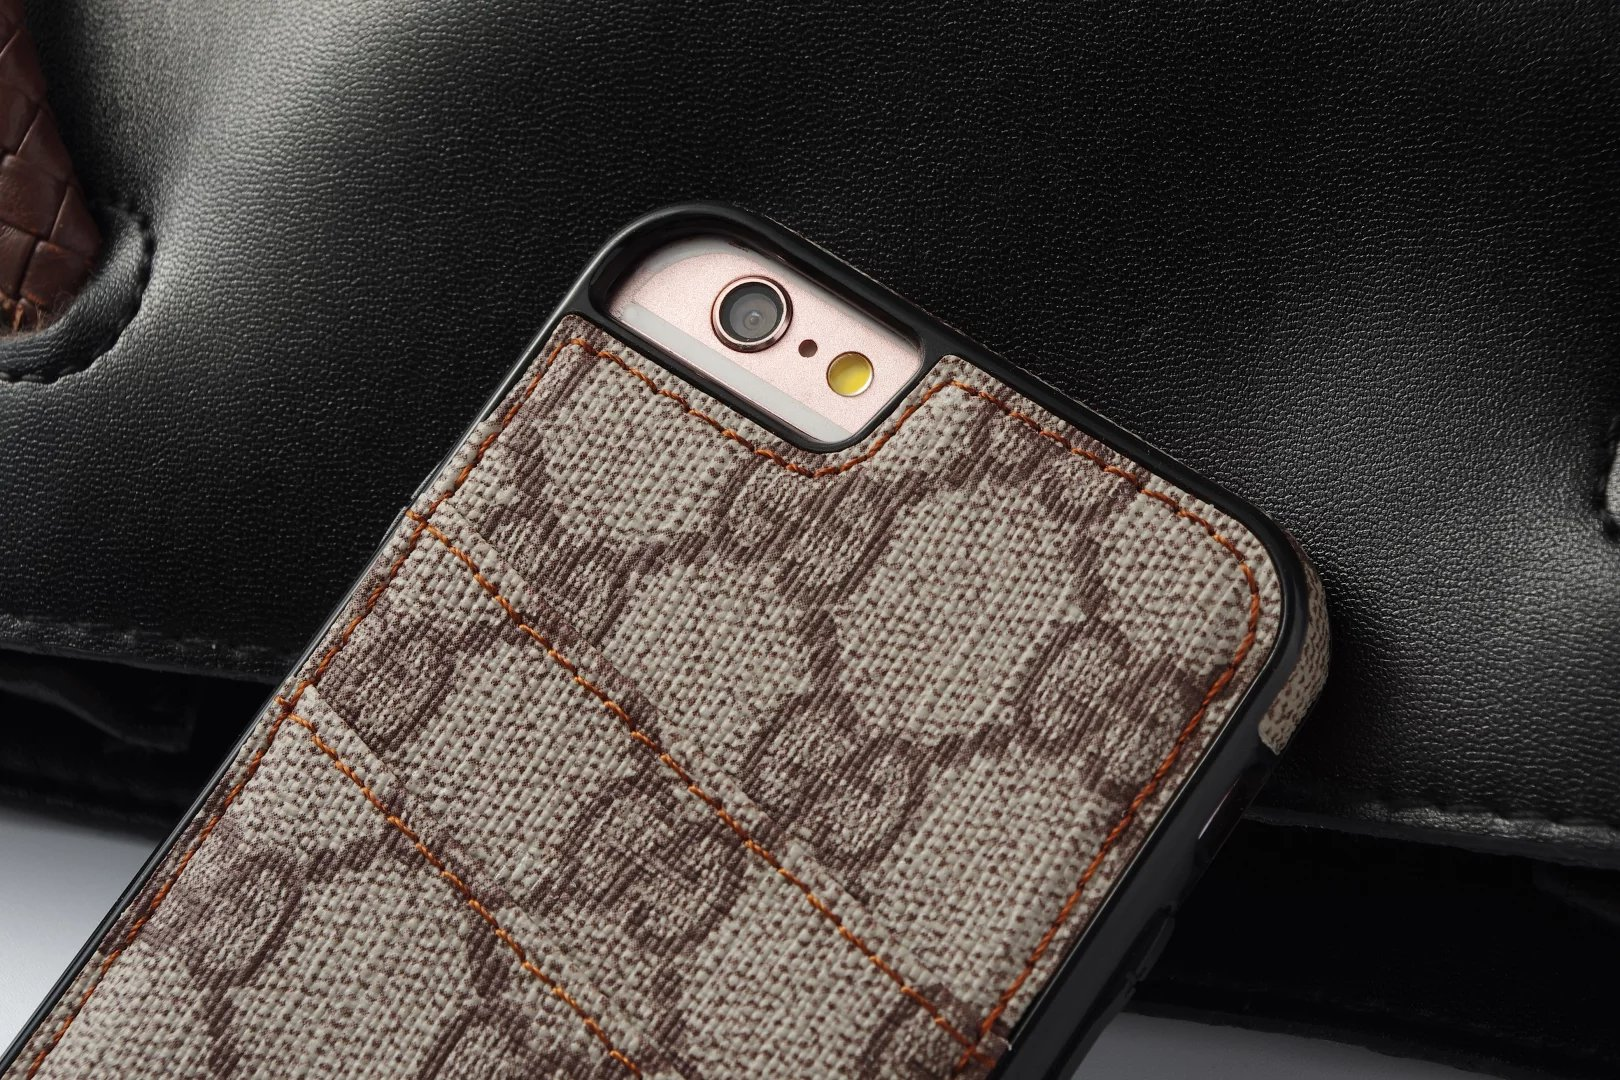 iphone filzhülle iphone case erstellen Gucci iphone 8 Plus hüllen iphone 8 Plus hüle iphonne 8 Plus iphone 8 Plus hülle design design handyhülle handy taschen 8 Pluslbst gestalten iphone 8 Plus 8 Plus 8 Plus zoll